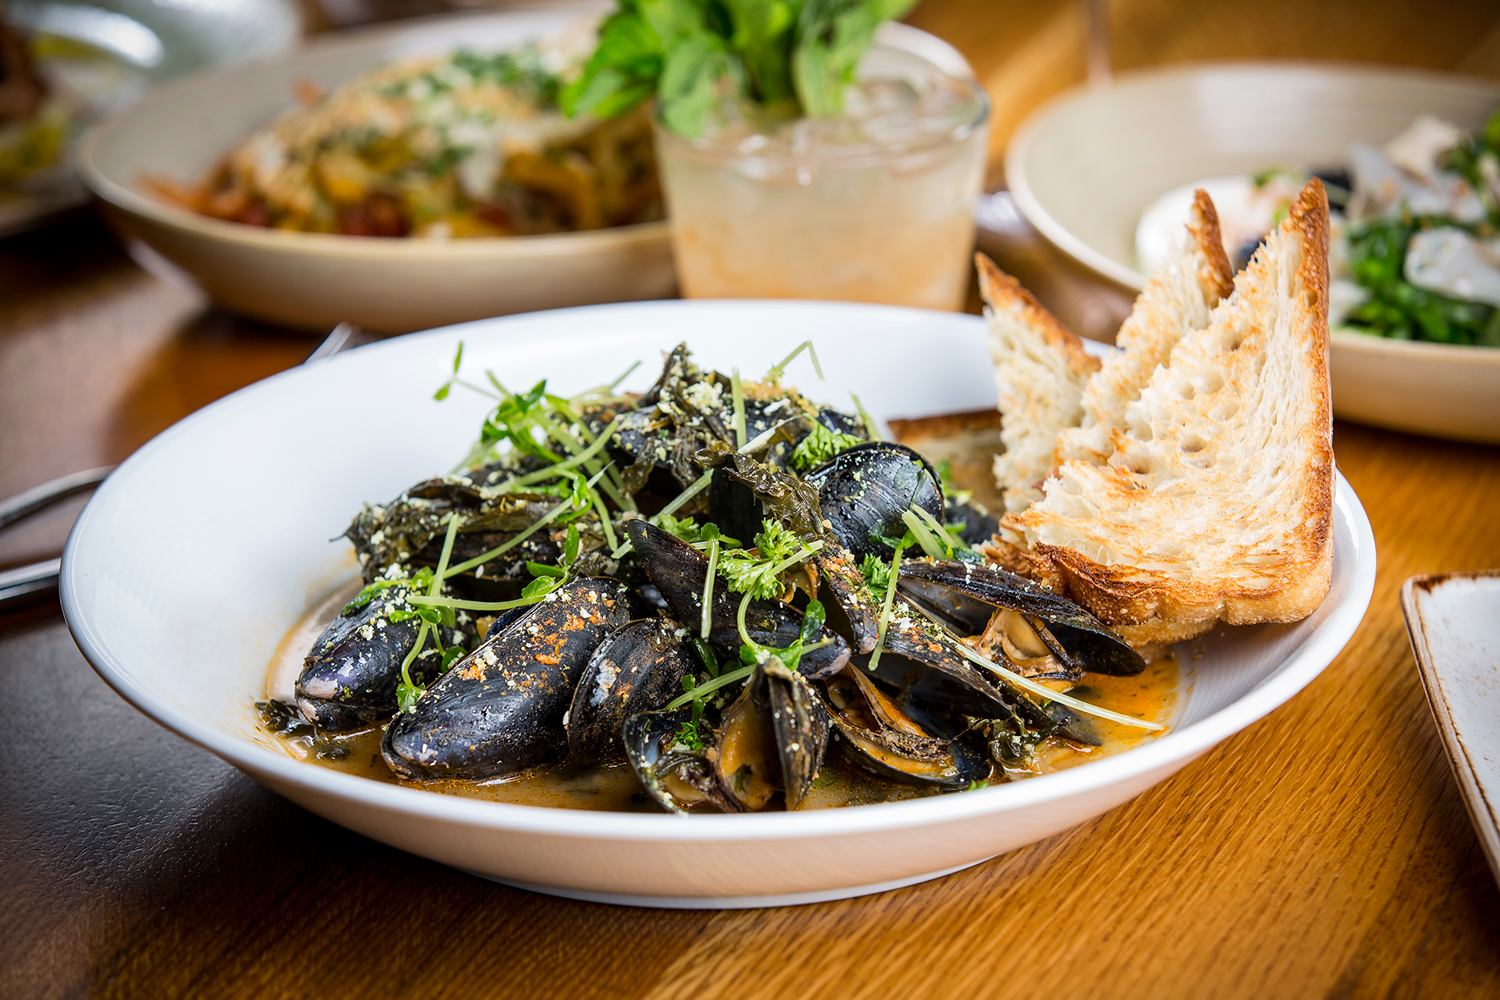 Pan-Roasted-Mussels-at-State-and-Lake-Chicago-Tavern